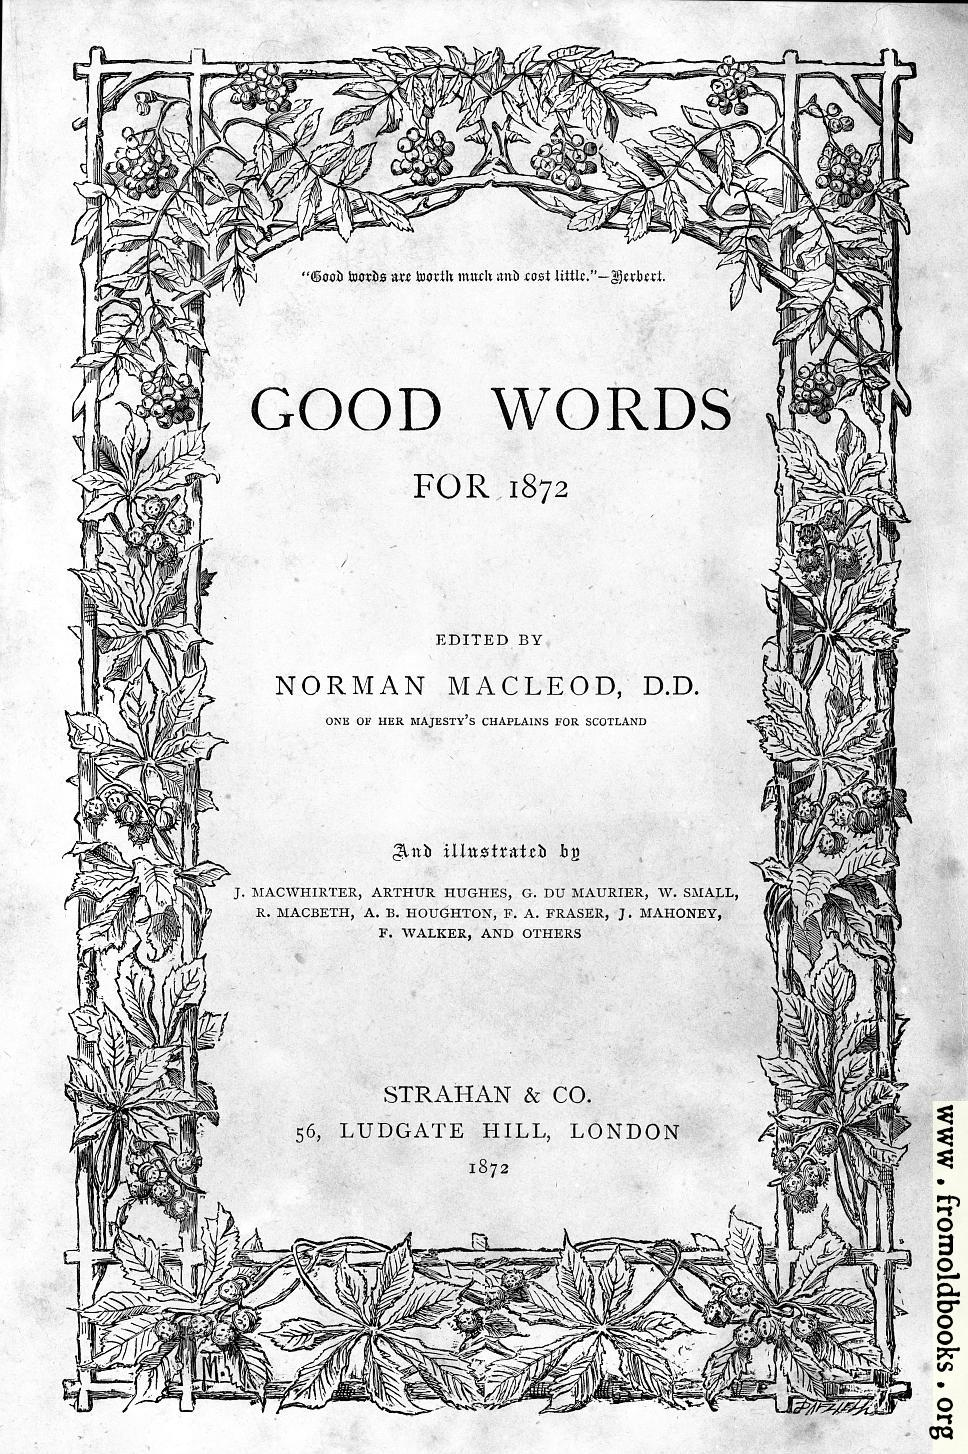 the front cover or title page of good words from  968x1454 365k jpg